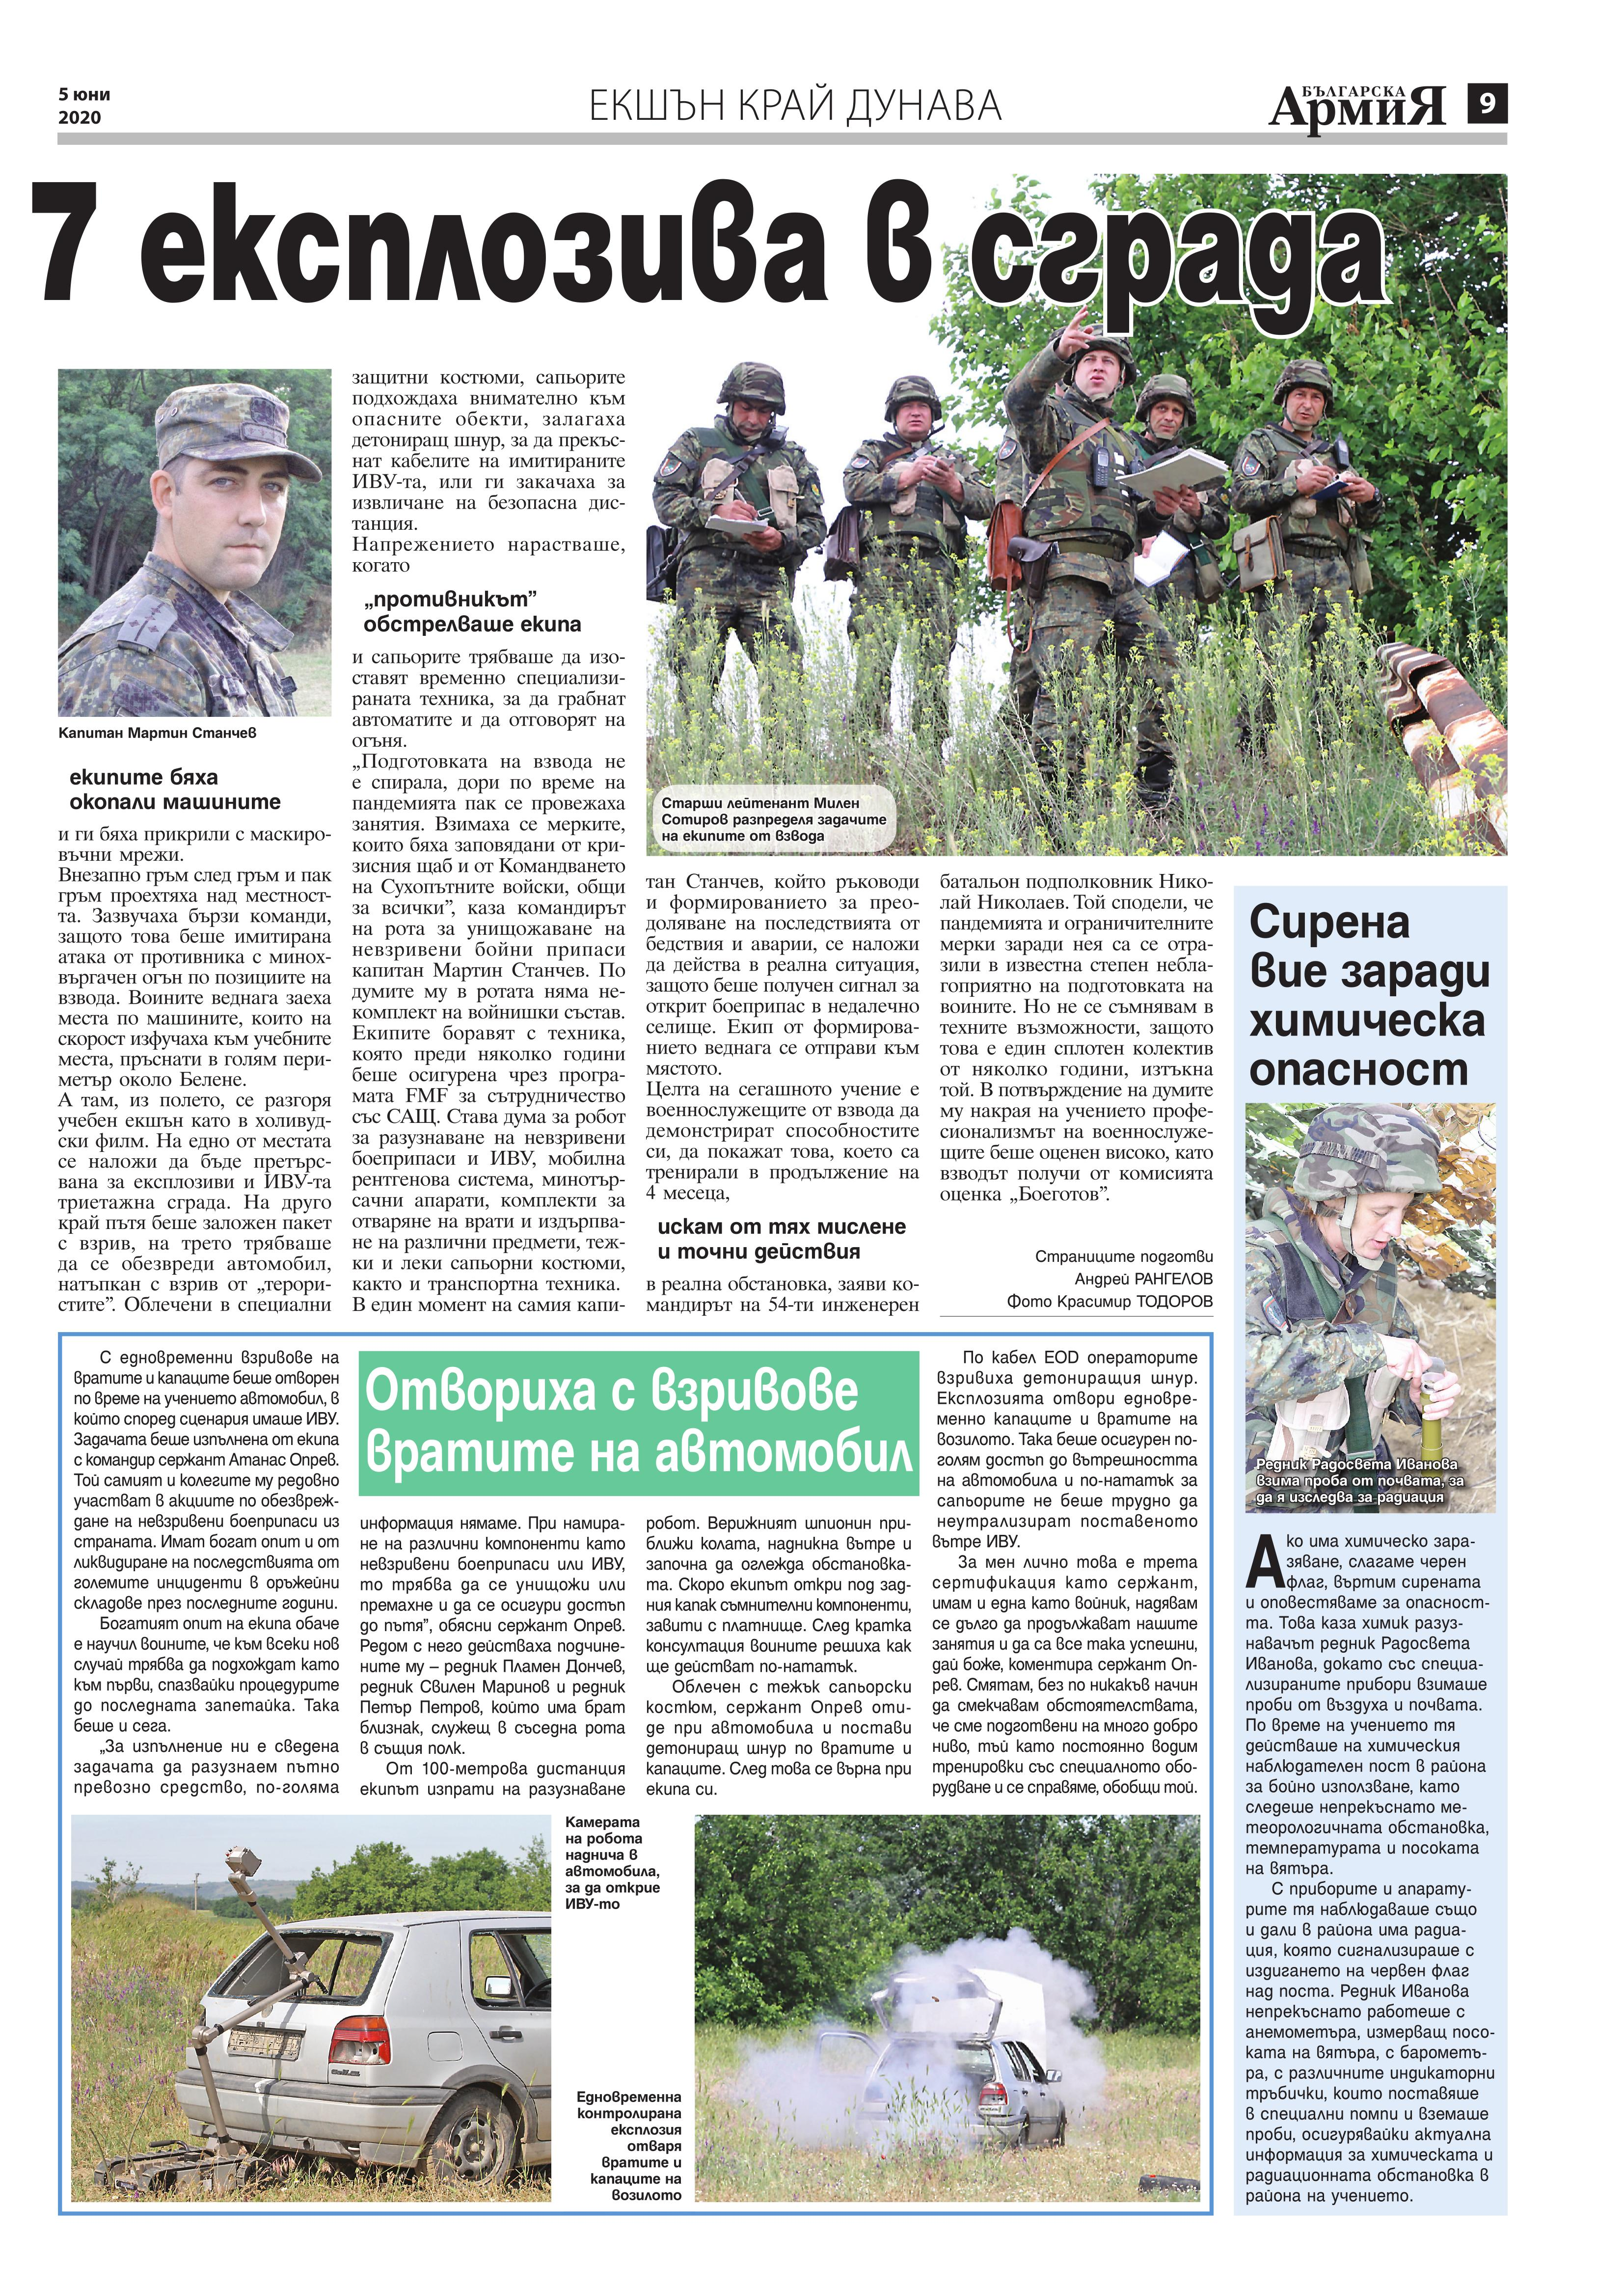 https://www.armymedia.bg/wp-content/uploads/2015/06/09.page1_-140.jpg